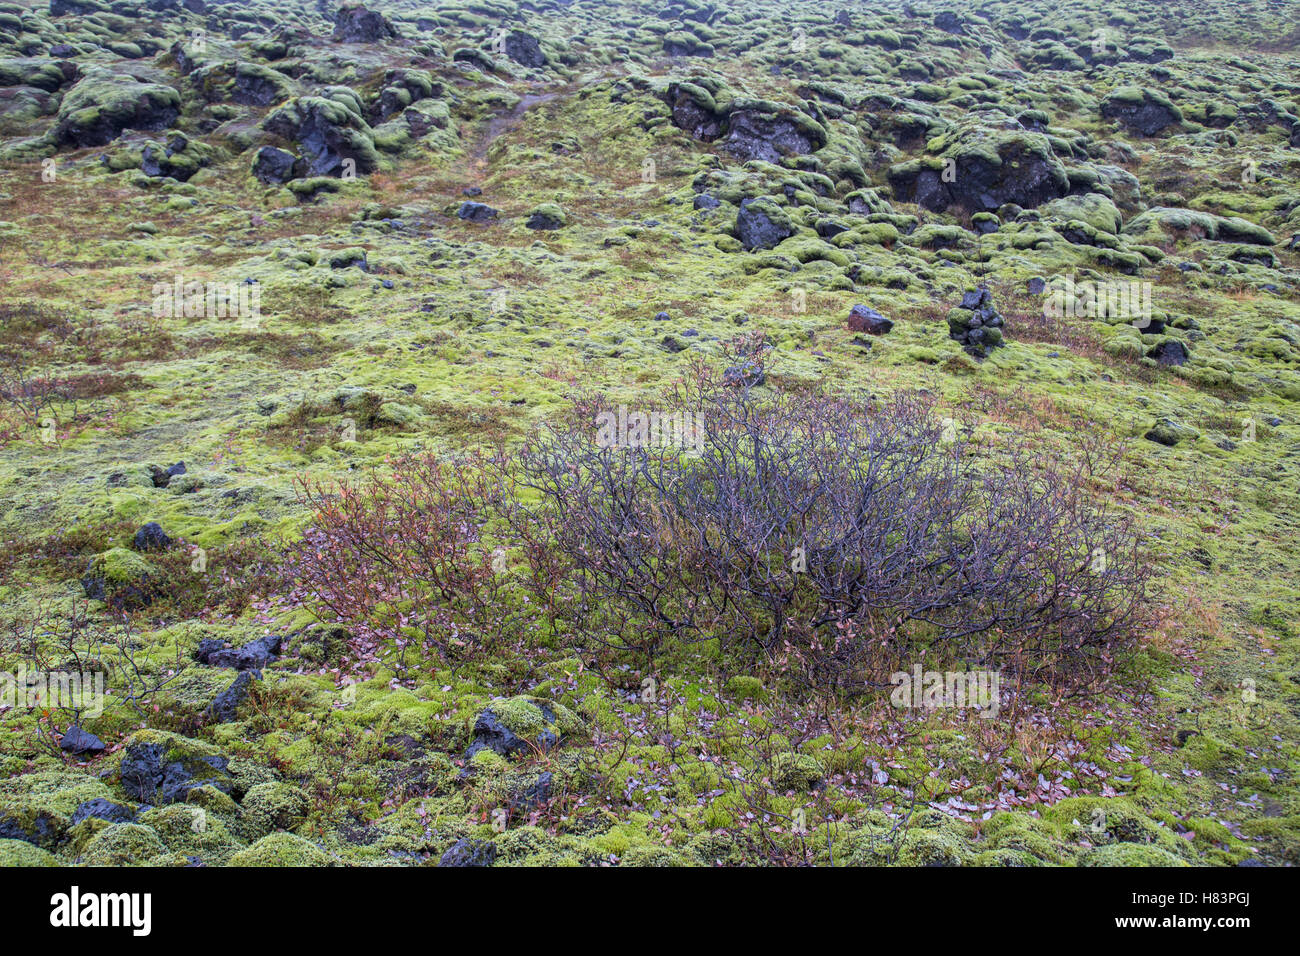 Wooly moss on volcanic rock in Eldhraun lava field Iceland - Stock Image